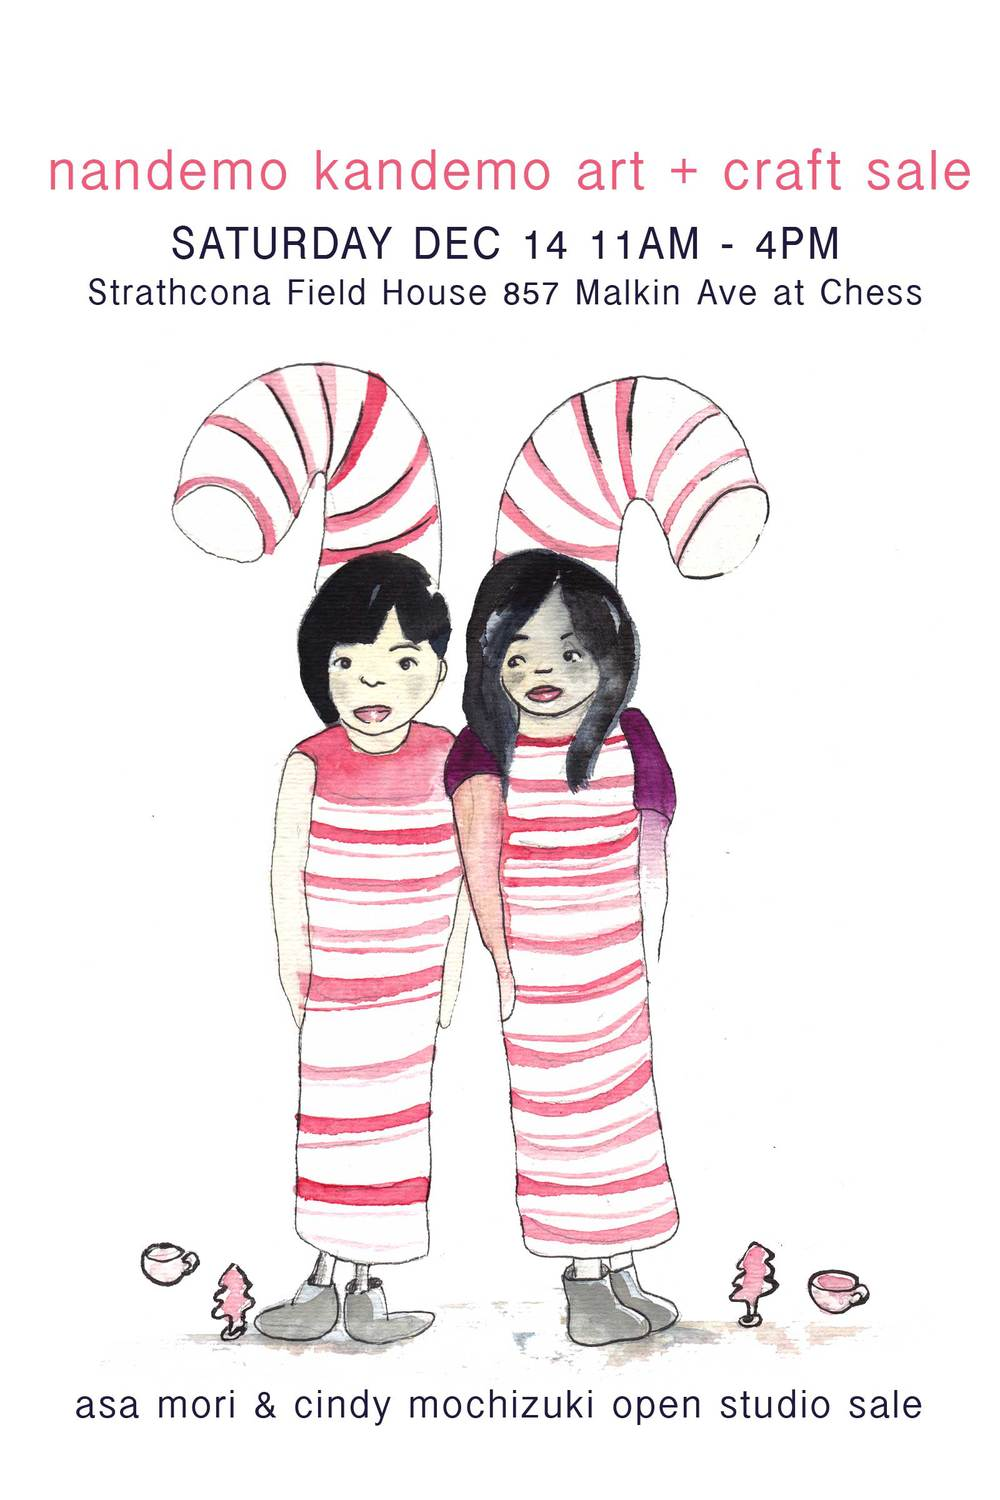 Asa Mori & Cindy Mochizuki studio sale at the Strathcona Field House!